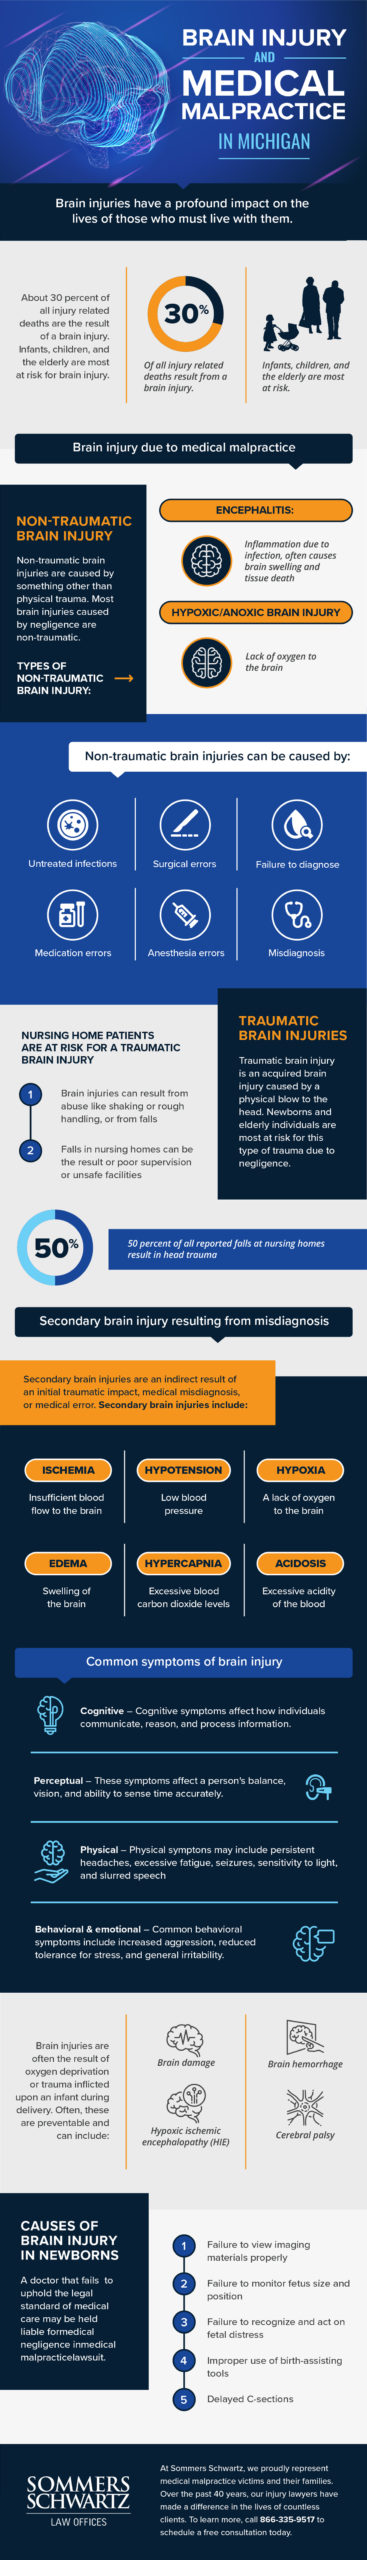 Sommers IF Brain Injury v2 scaled